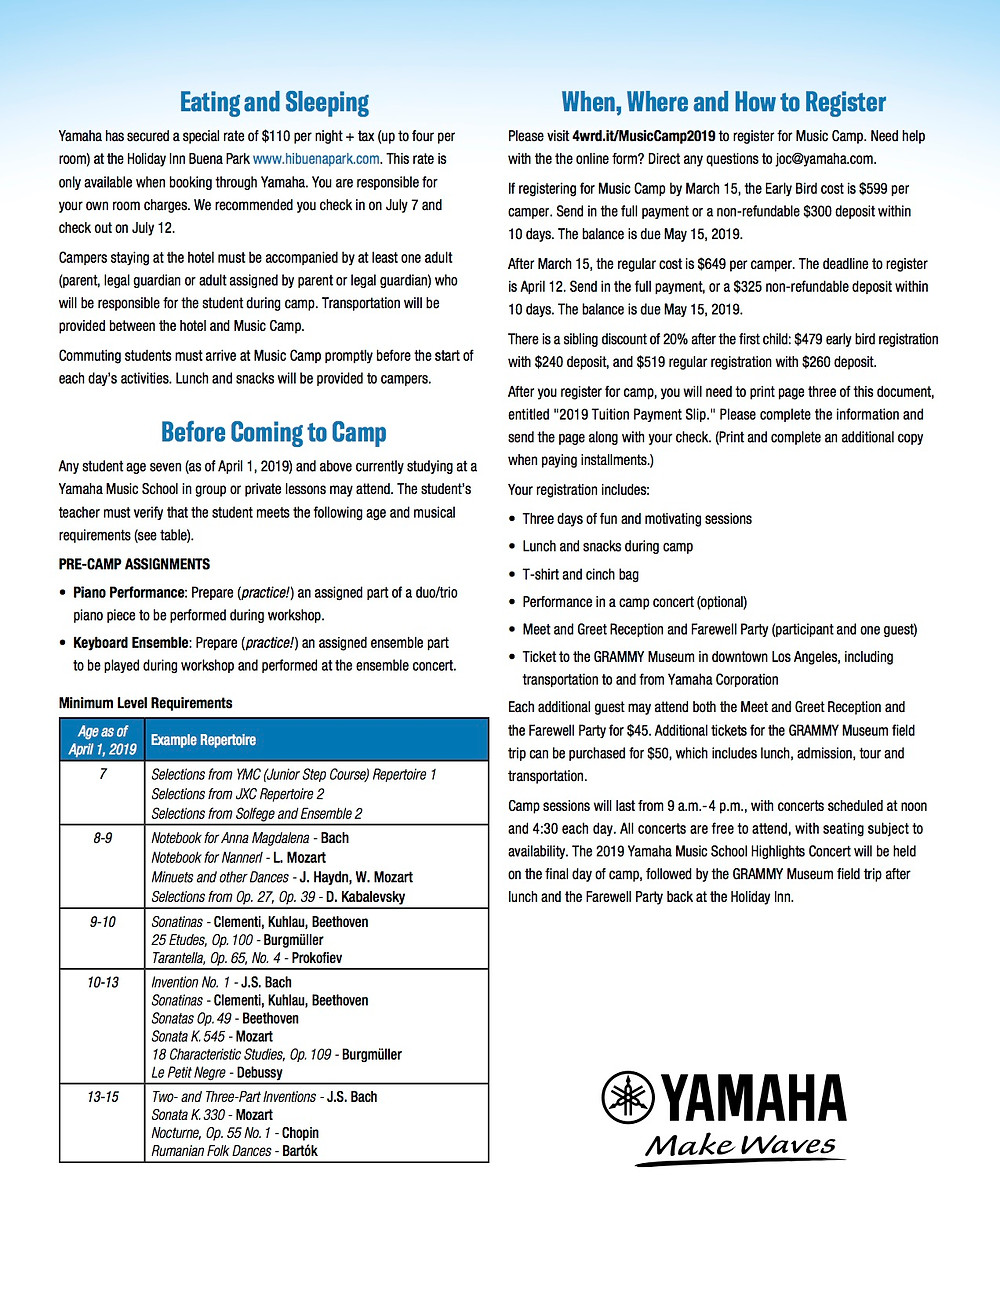 2019 Yamaha Music Camp Brochure 2